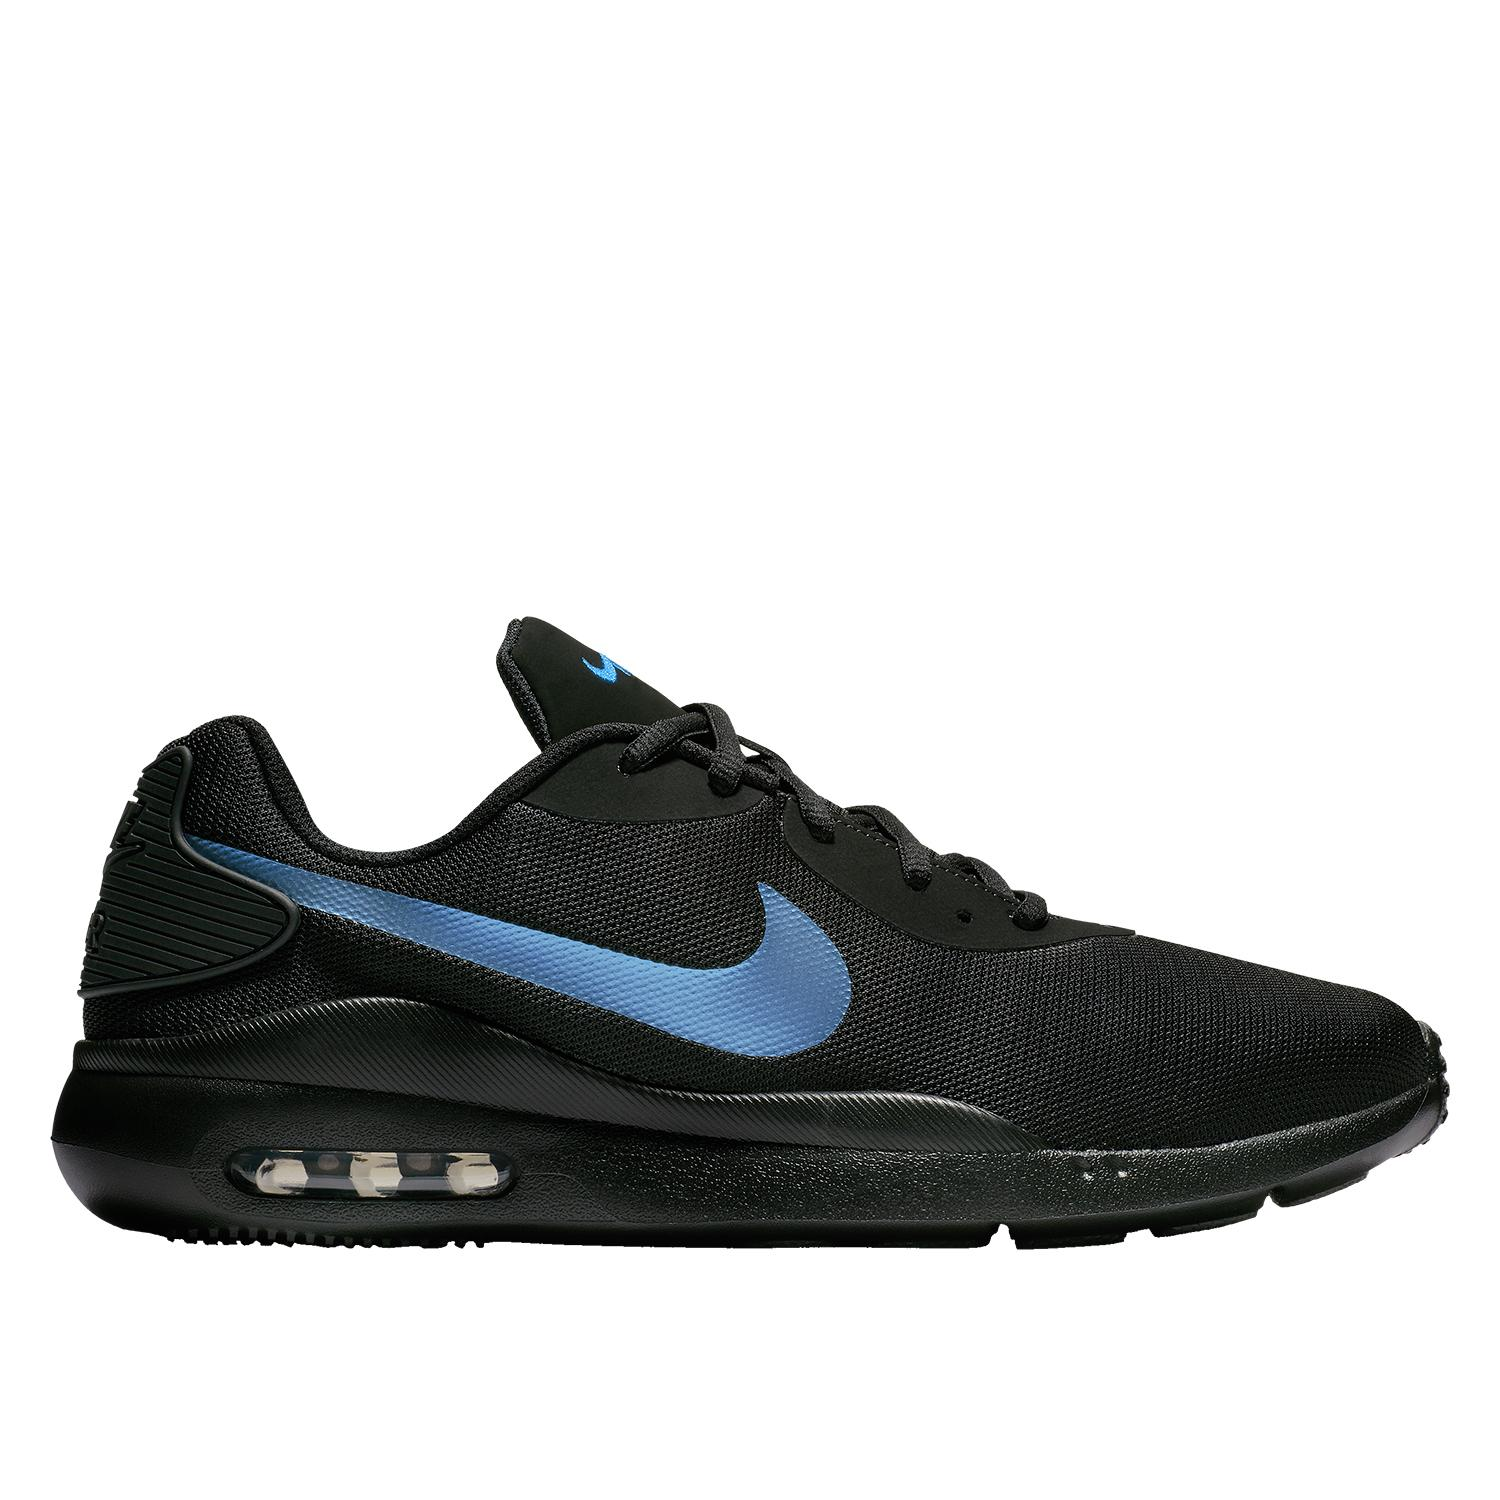 dfd8862040be Nike Air Max Oketo Men s Casual Shoe in Black - Intersport Australia